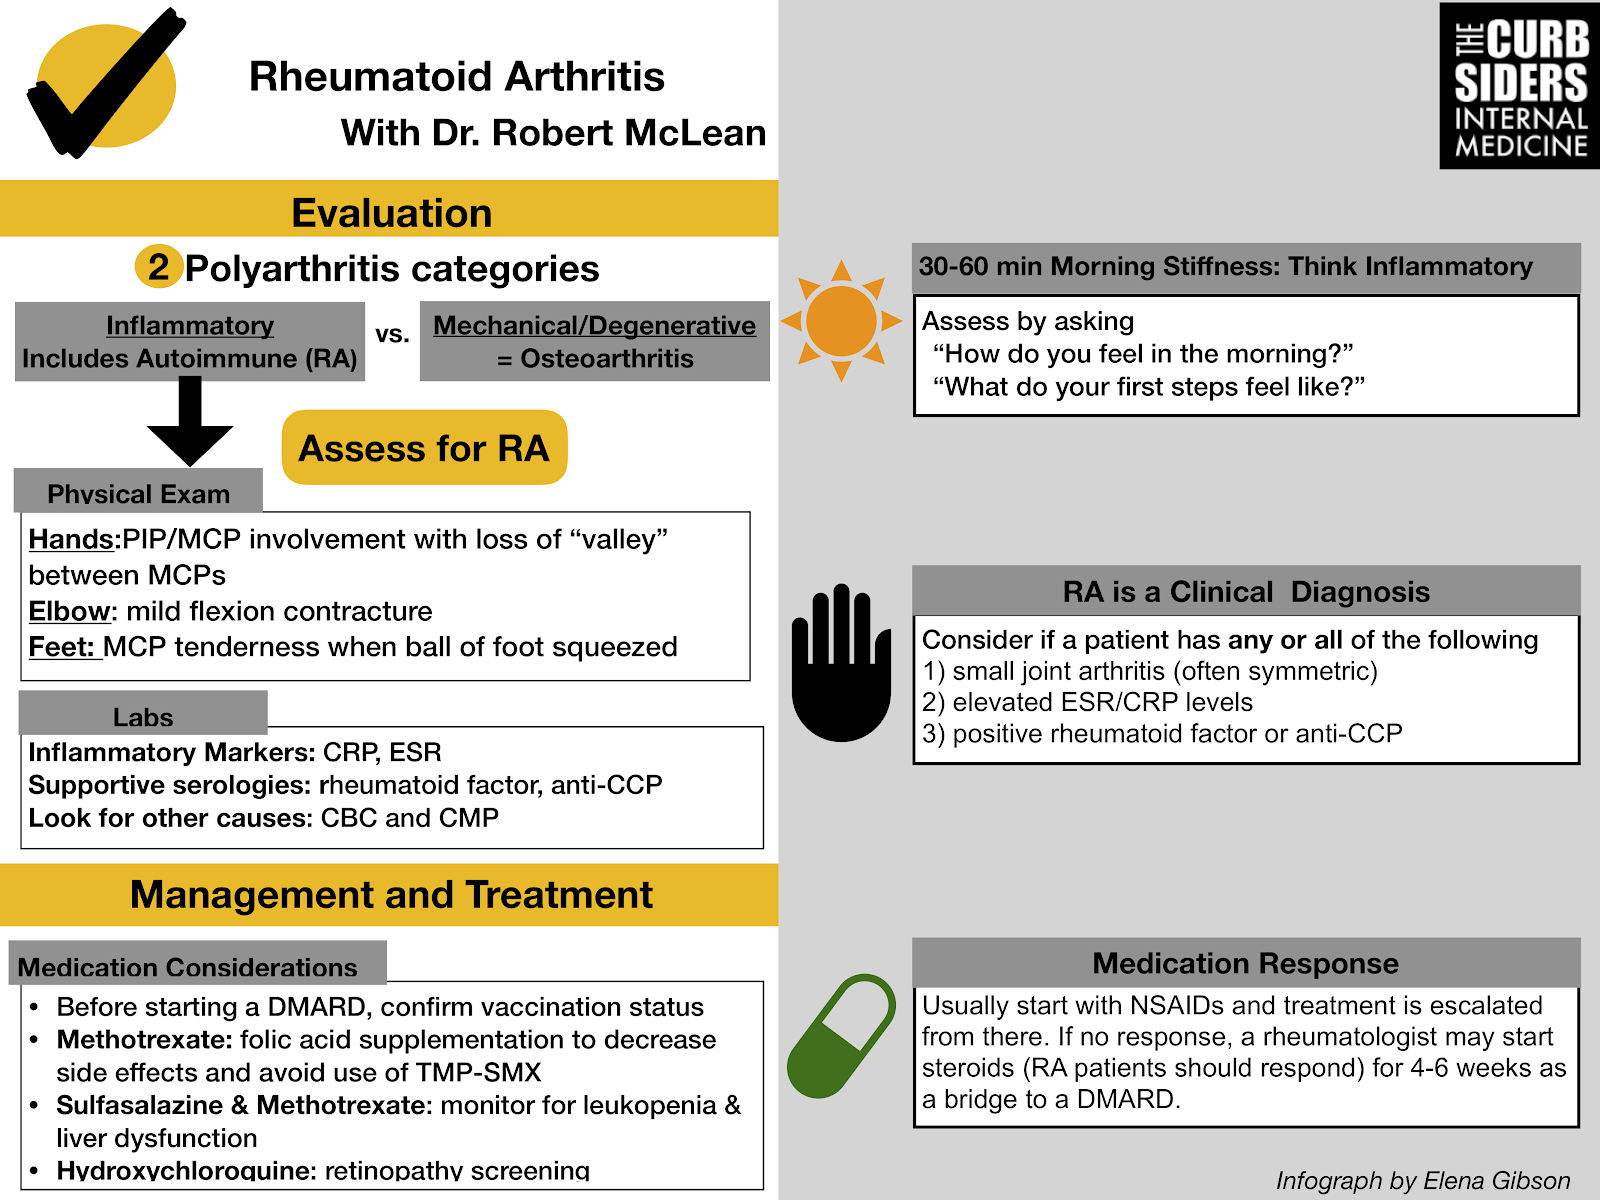 Rheumatoid Arthritis for the Internist with Robert McLean MD